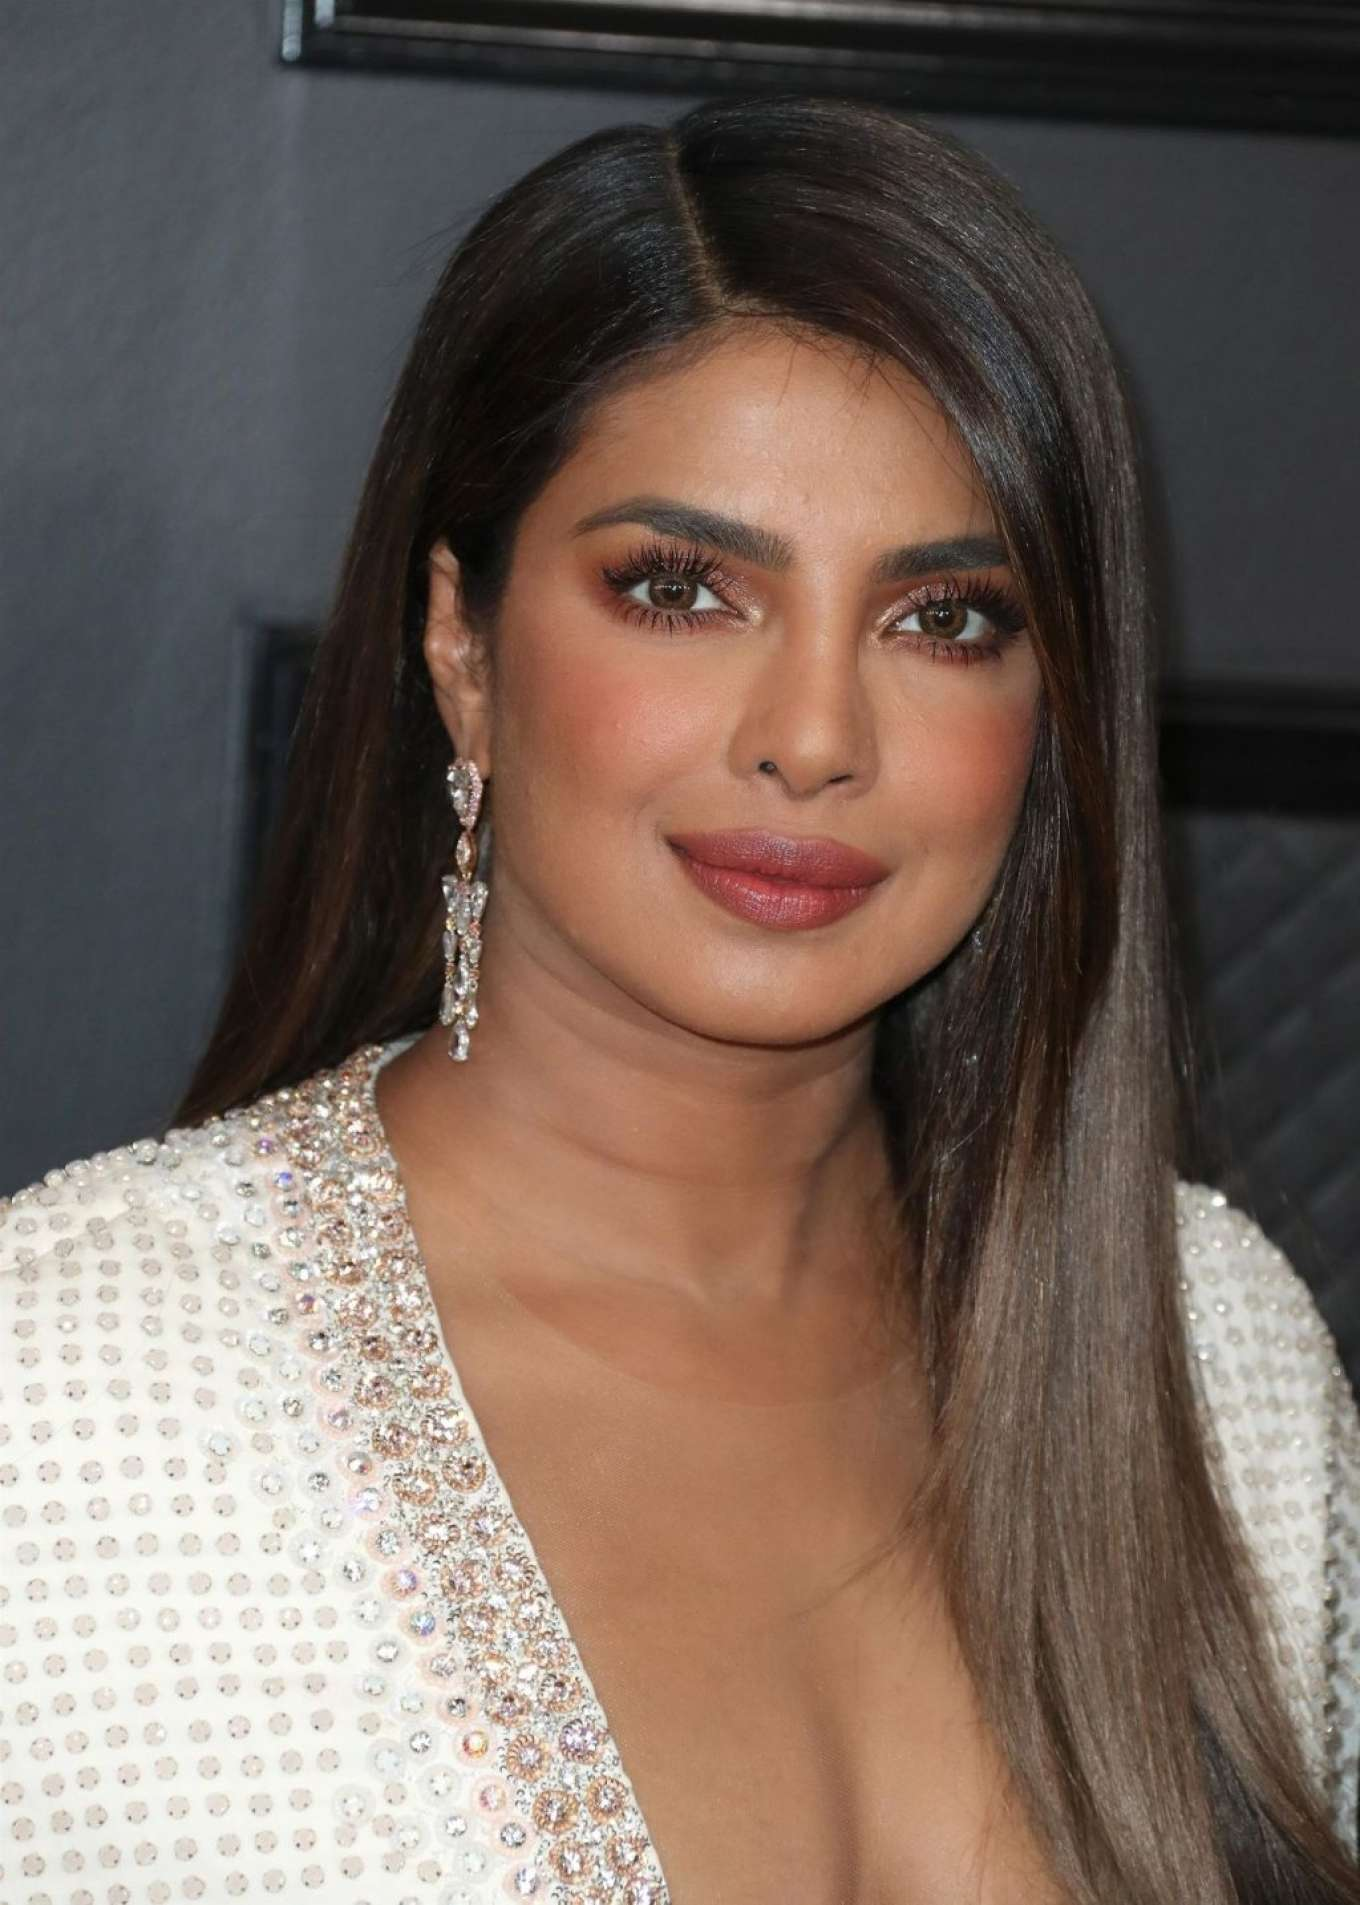 Priyanka Chopra - 62nd Annual Grammy Awards in Los Angeles